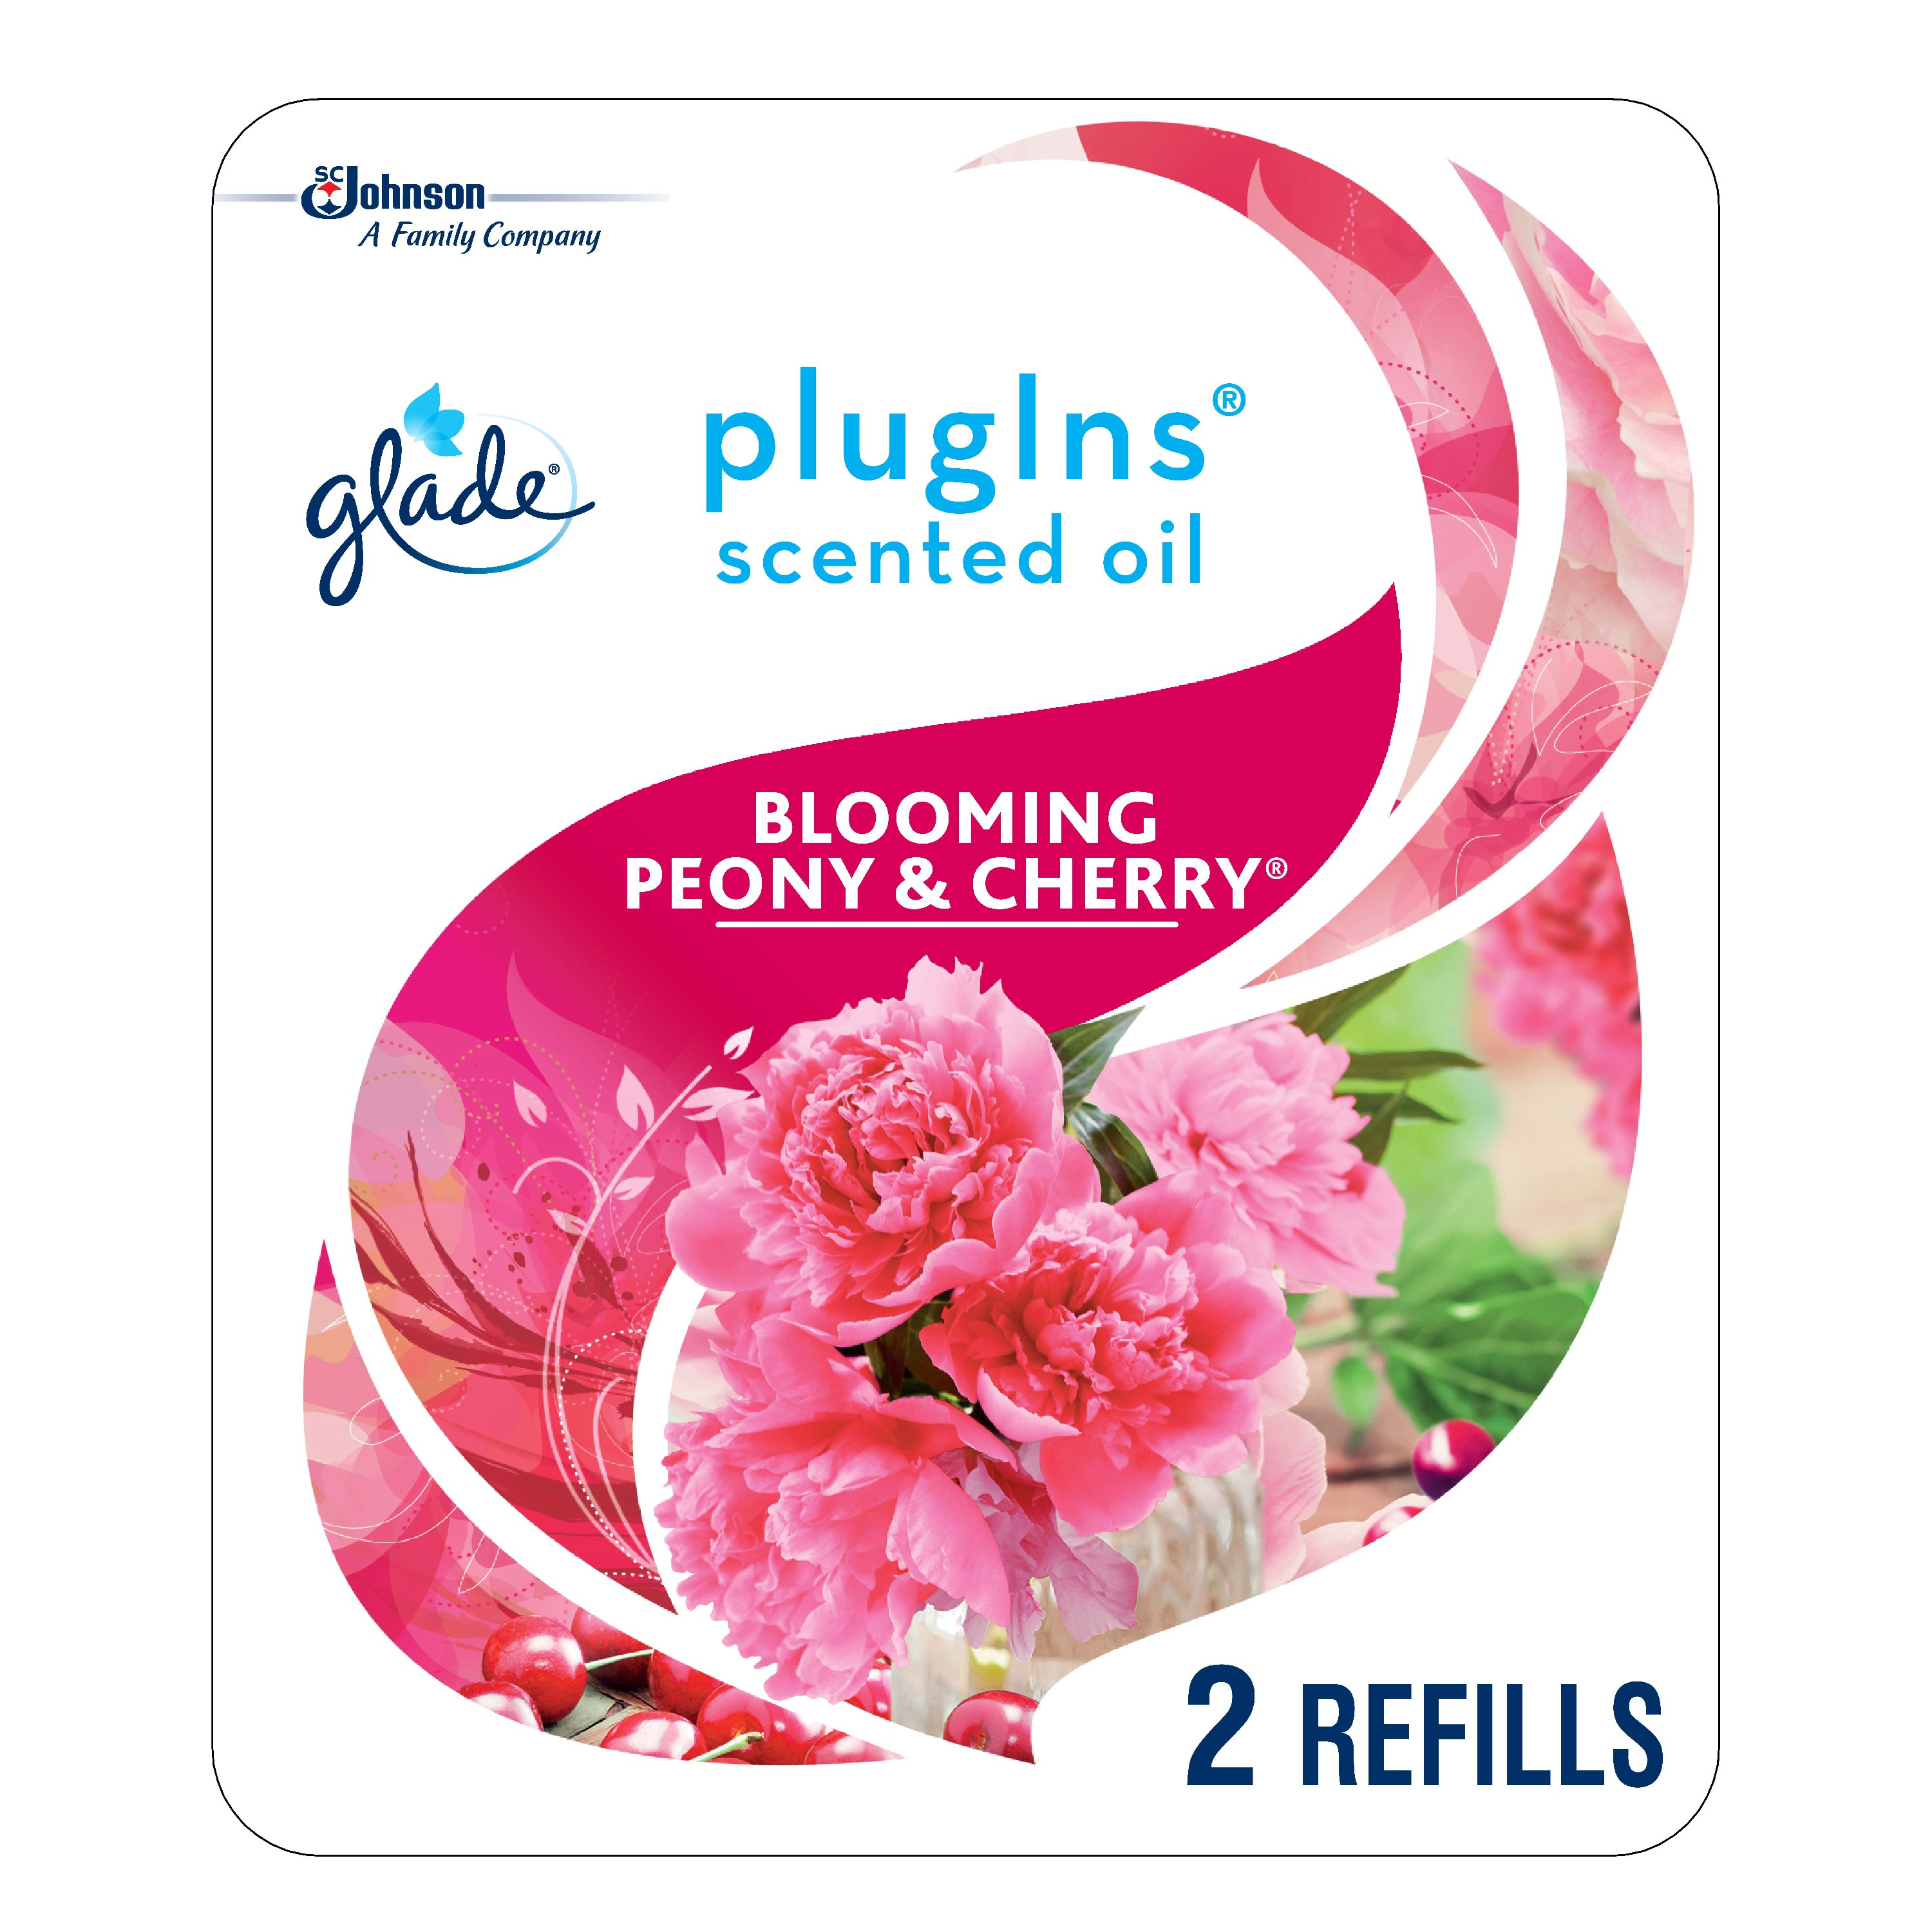 Glade PlugIns Scented Oil Refill Blooming Peony & Cherry, Essential Oil Infused Wall Plug In, Up to 50 Days of Continuous Fragrance, 1.34 oz, Pack of 2